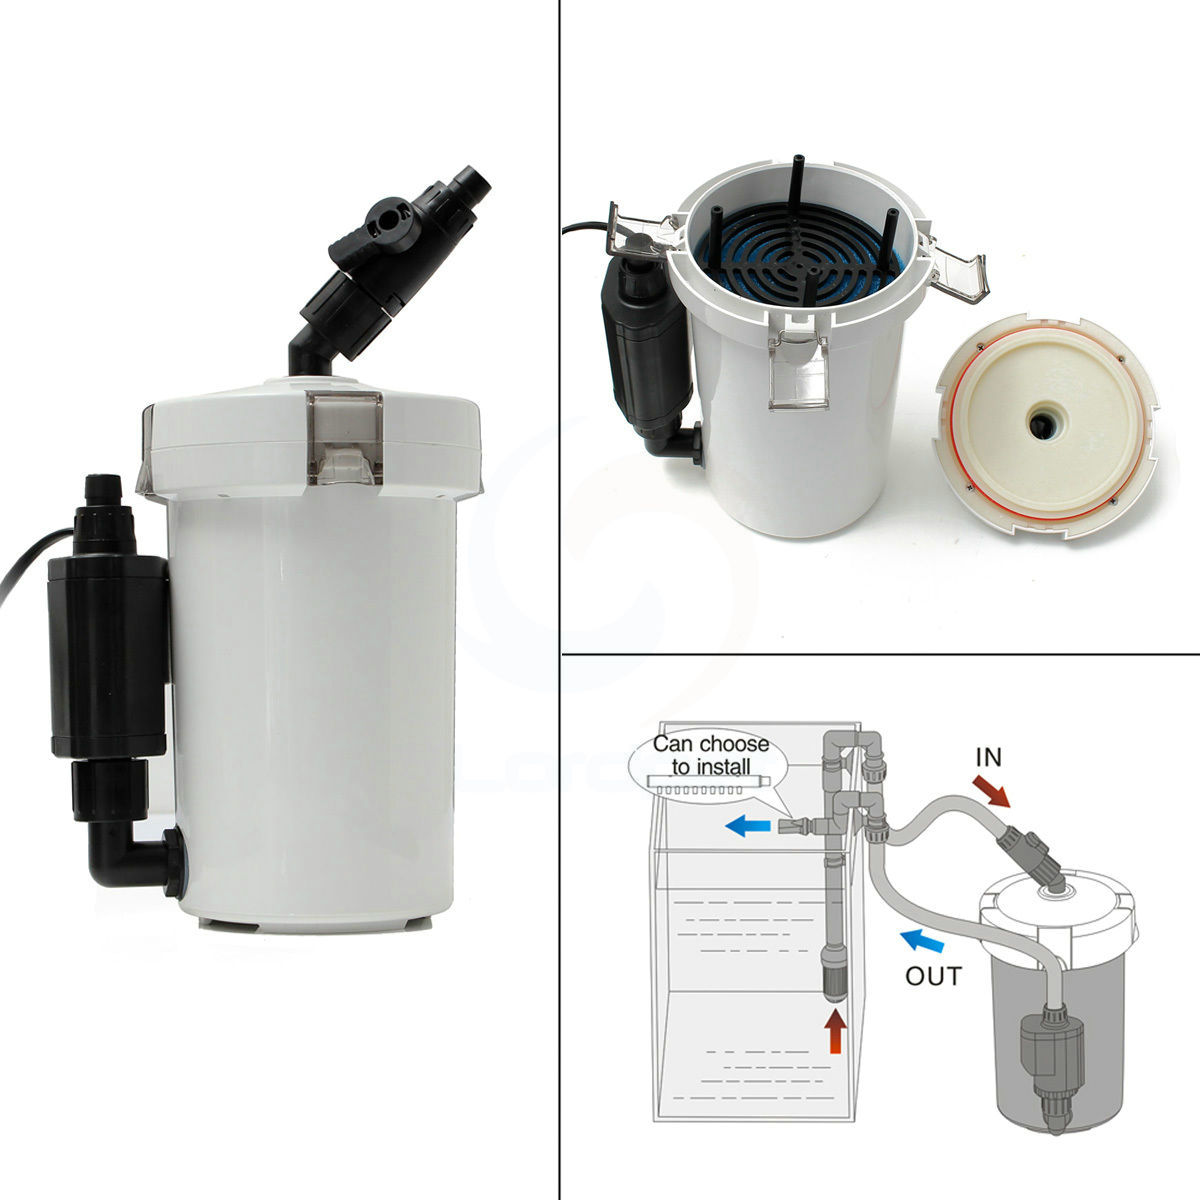 Boyu aquarium fish tank external filter canister - Sunsun Brand New 6w Aquarium Fish Tank External Canister Filter Table Top Hw 602b Hw